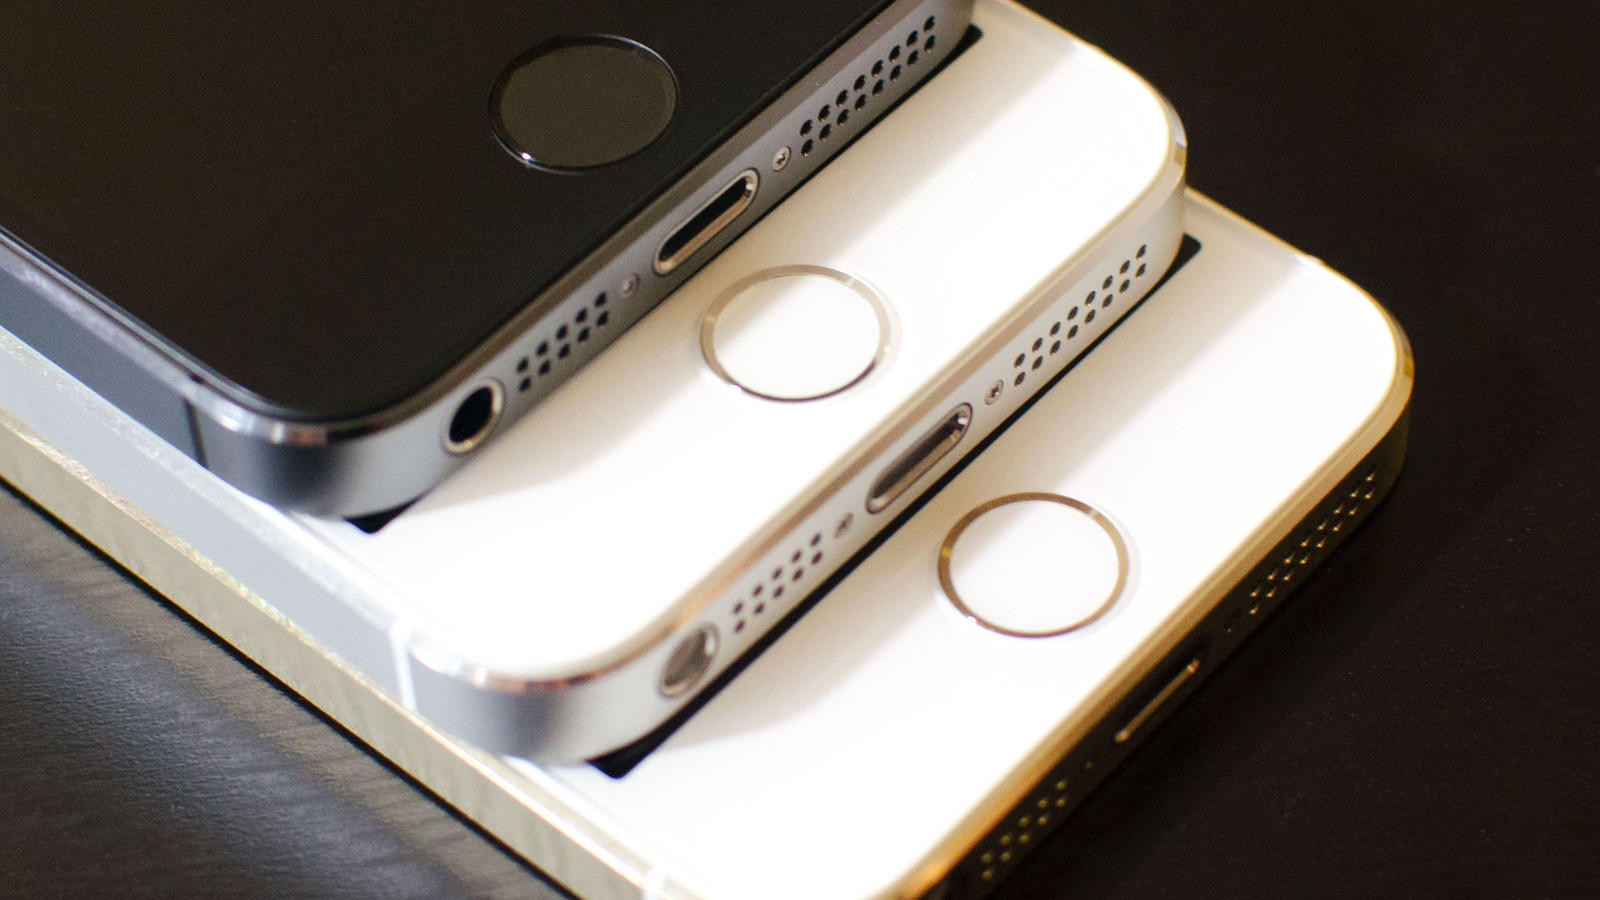 Why the fingerprint scanner in the iPhone 6s is so fast